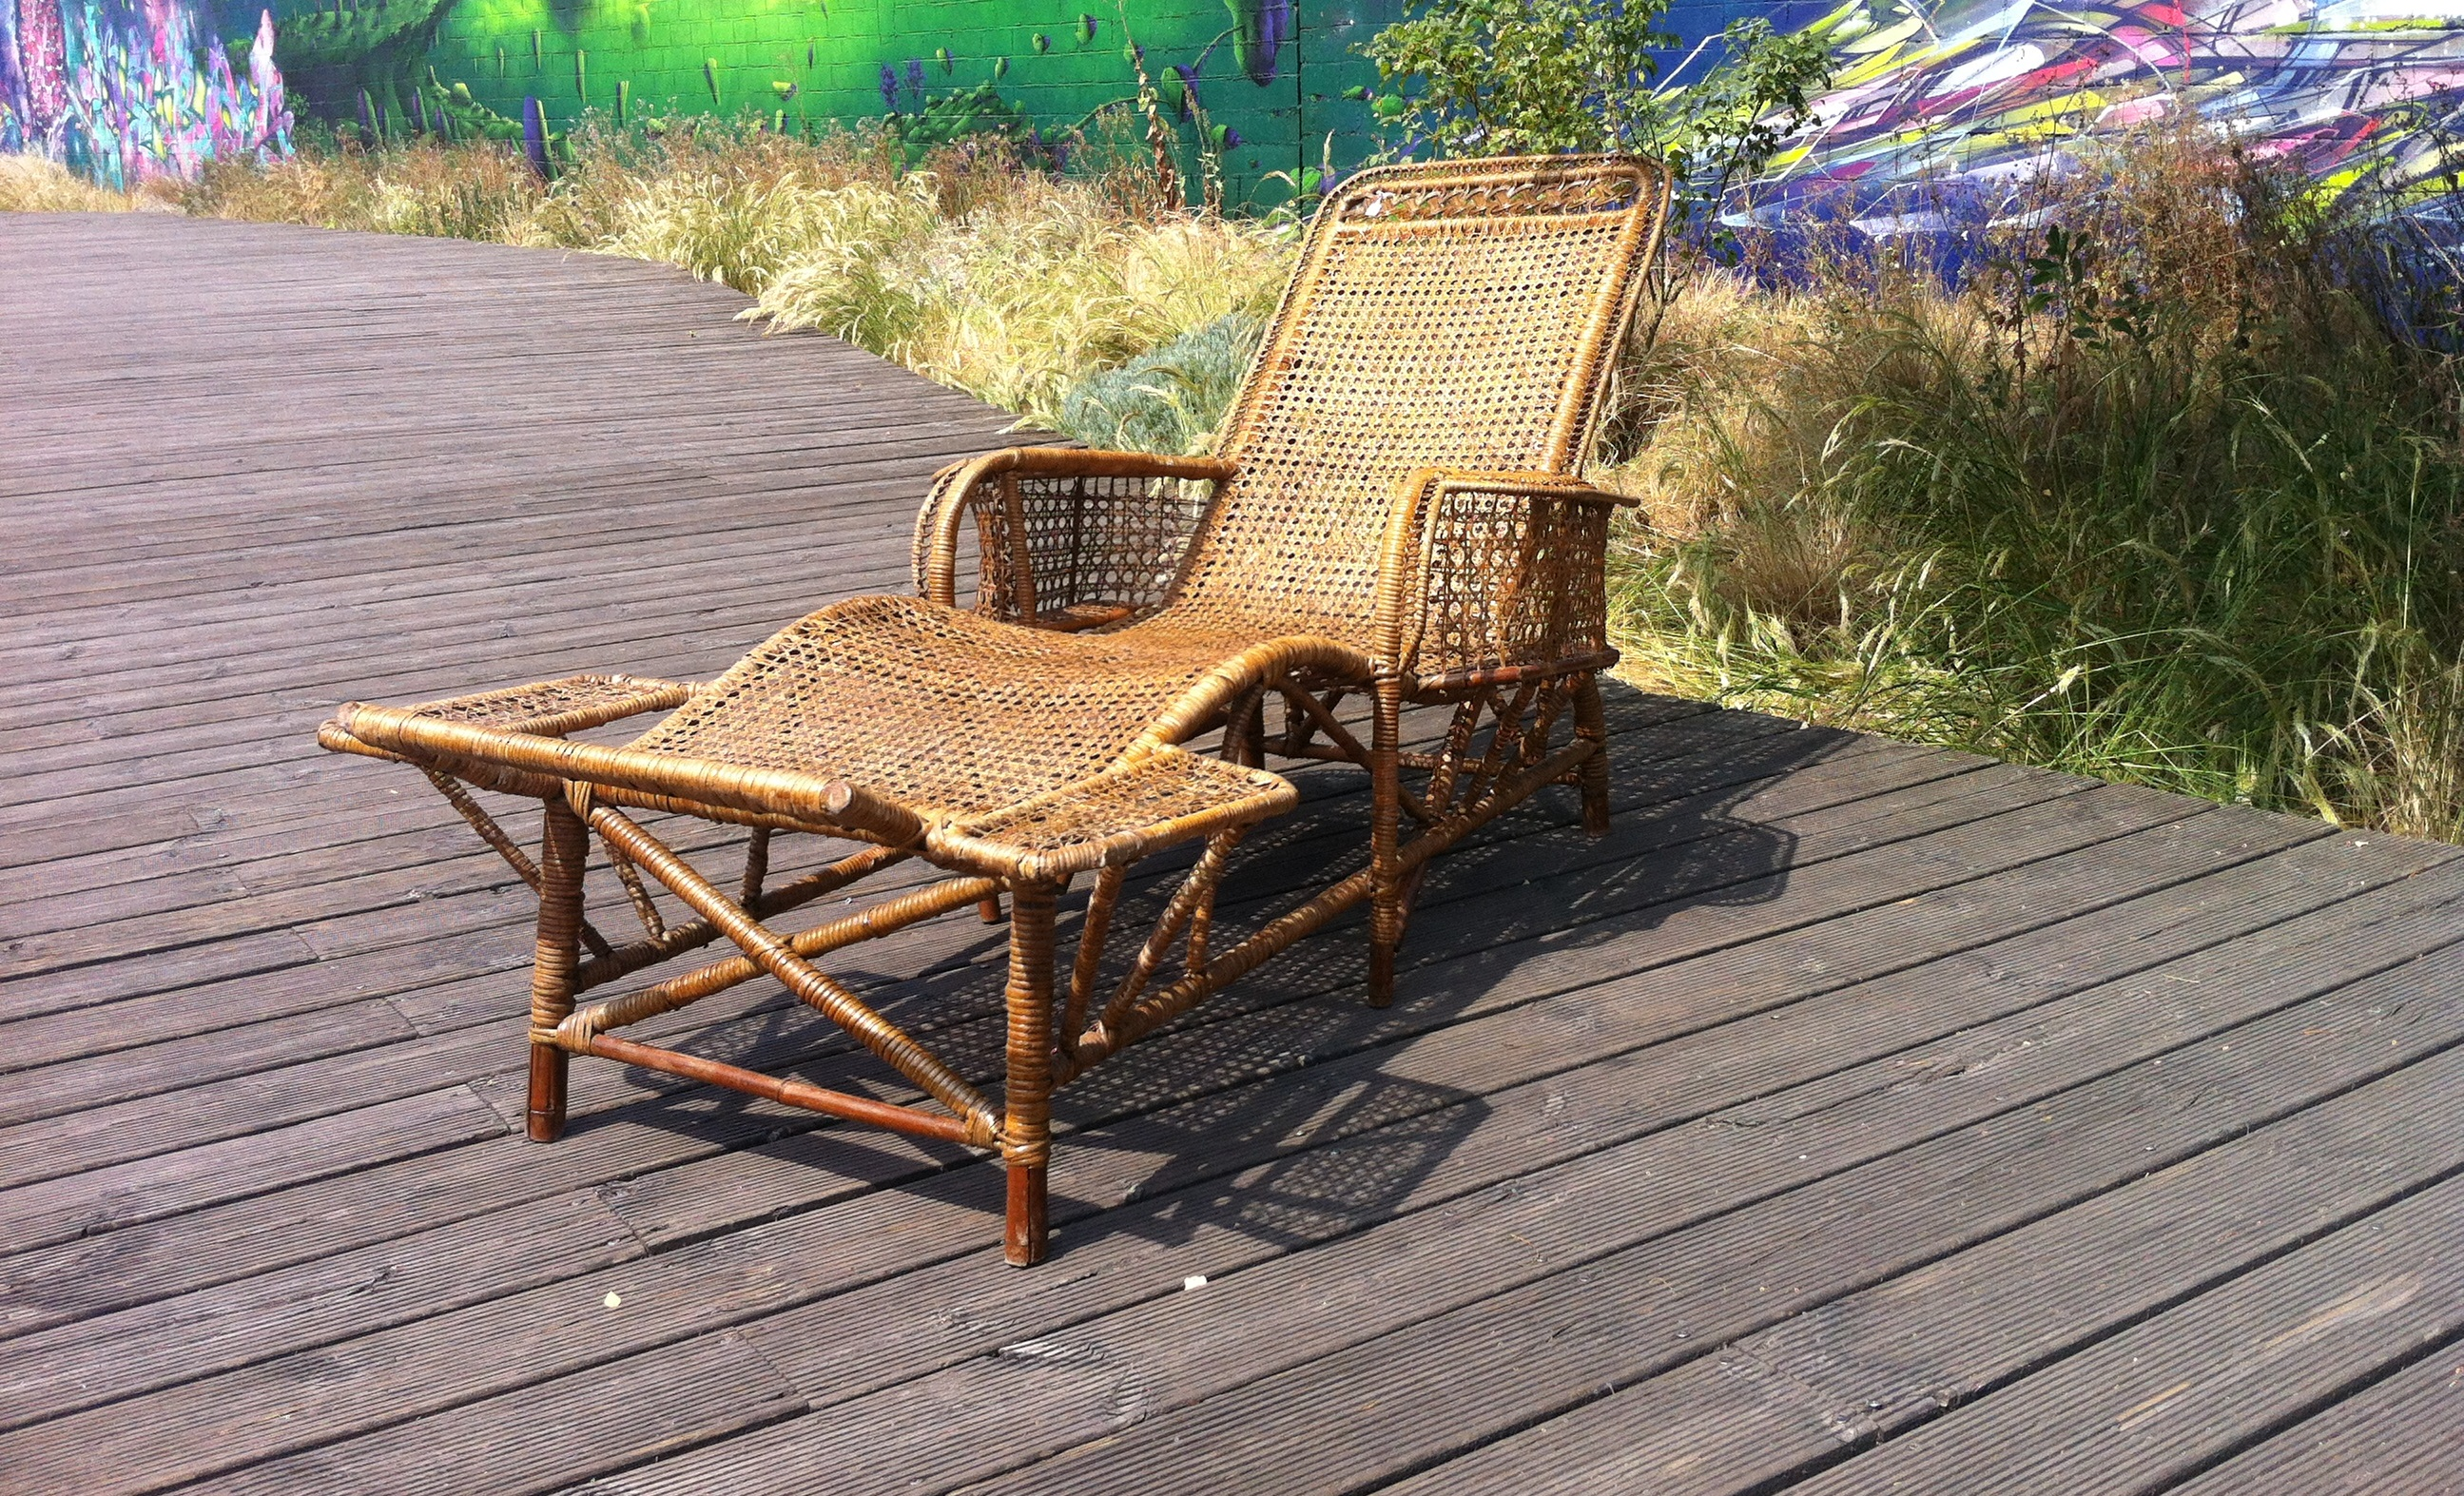 Chaise Longue Rotin Of Rattan Chaise Longue Begining Of 20th Galerie Vauclair